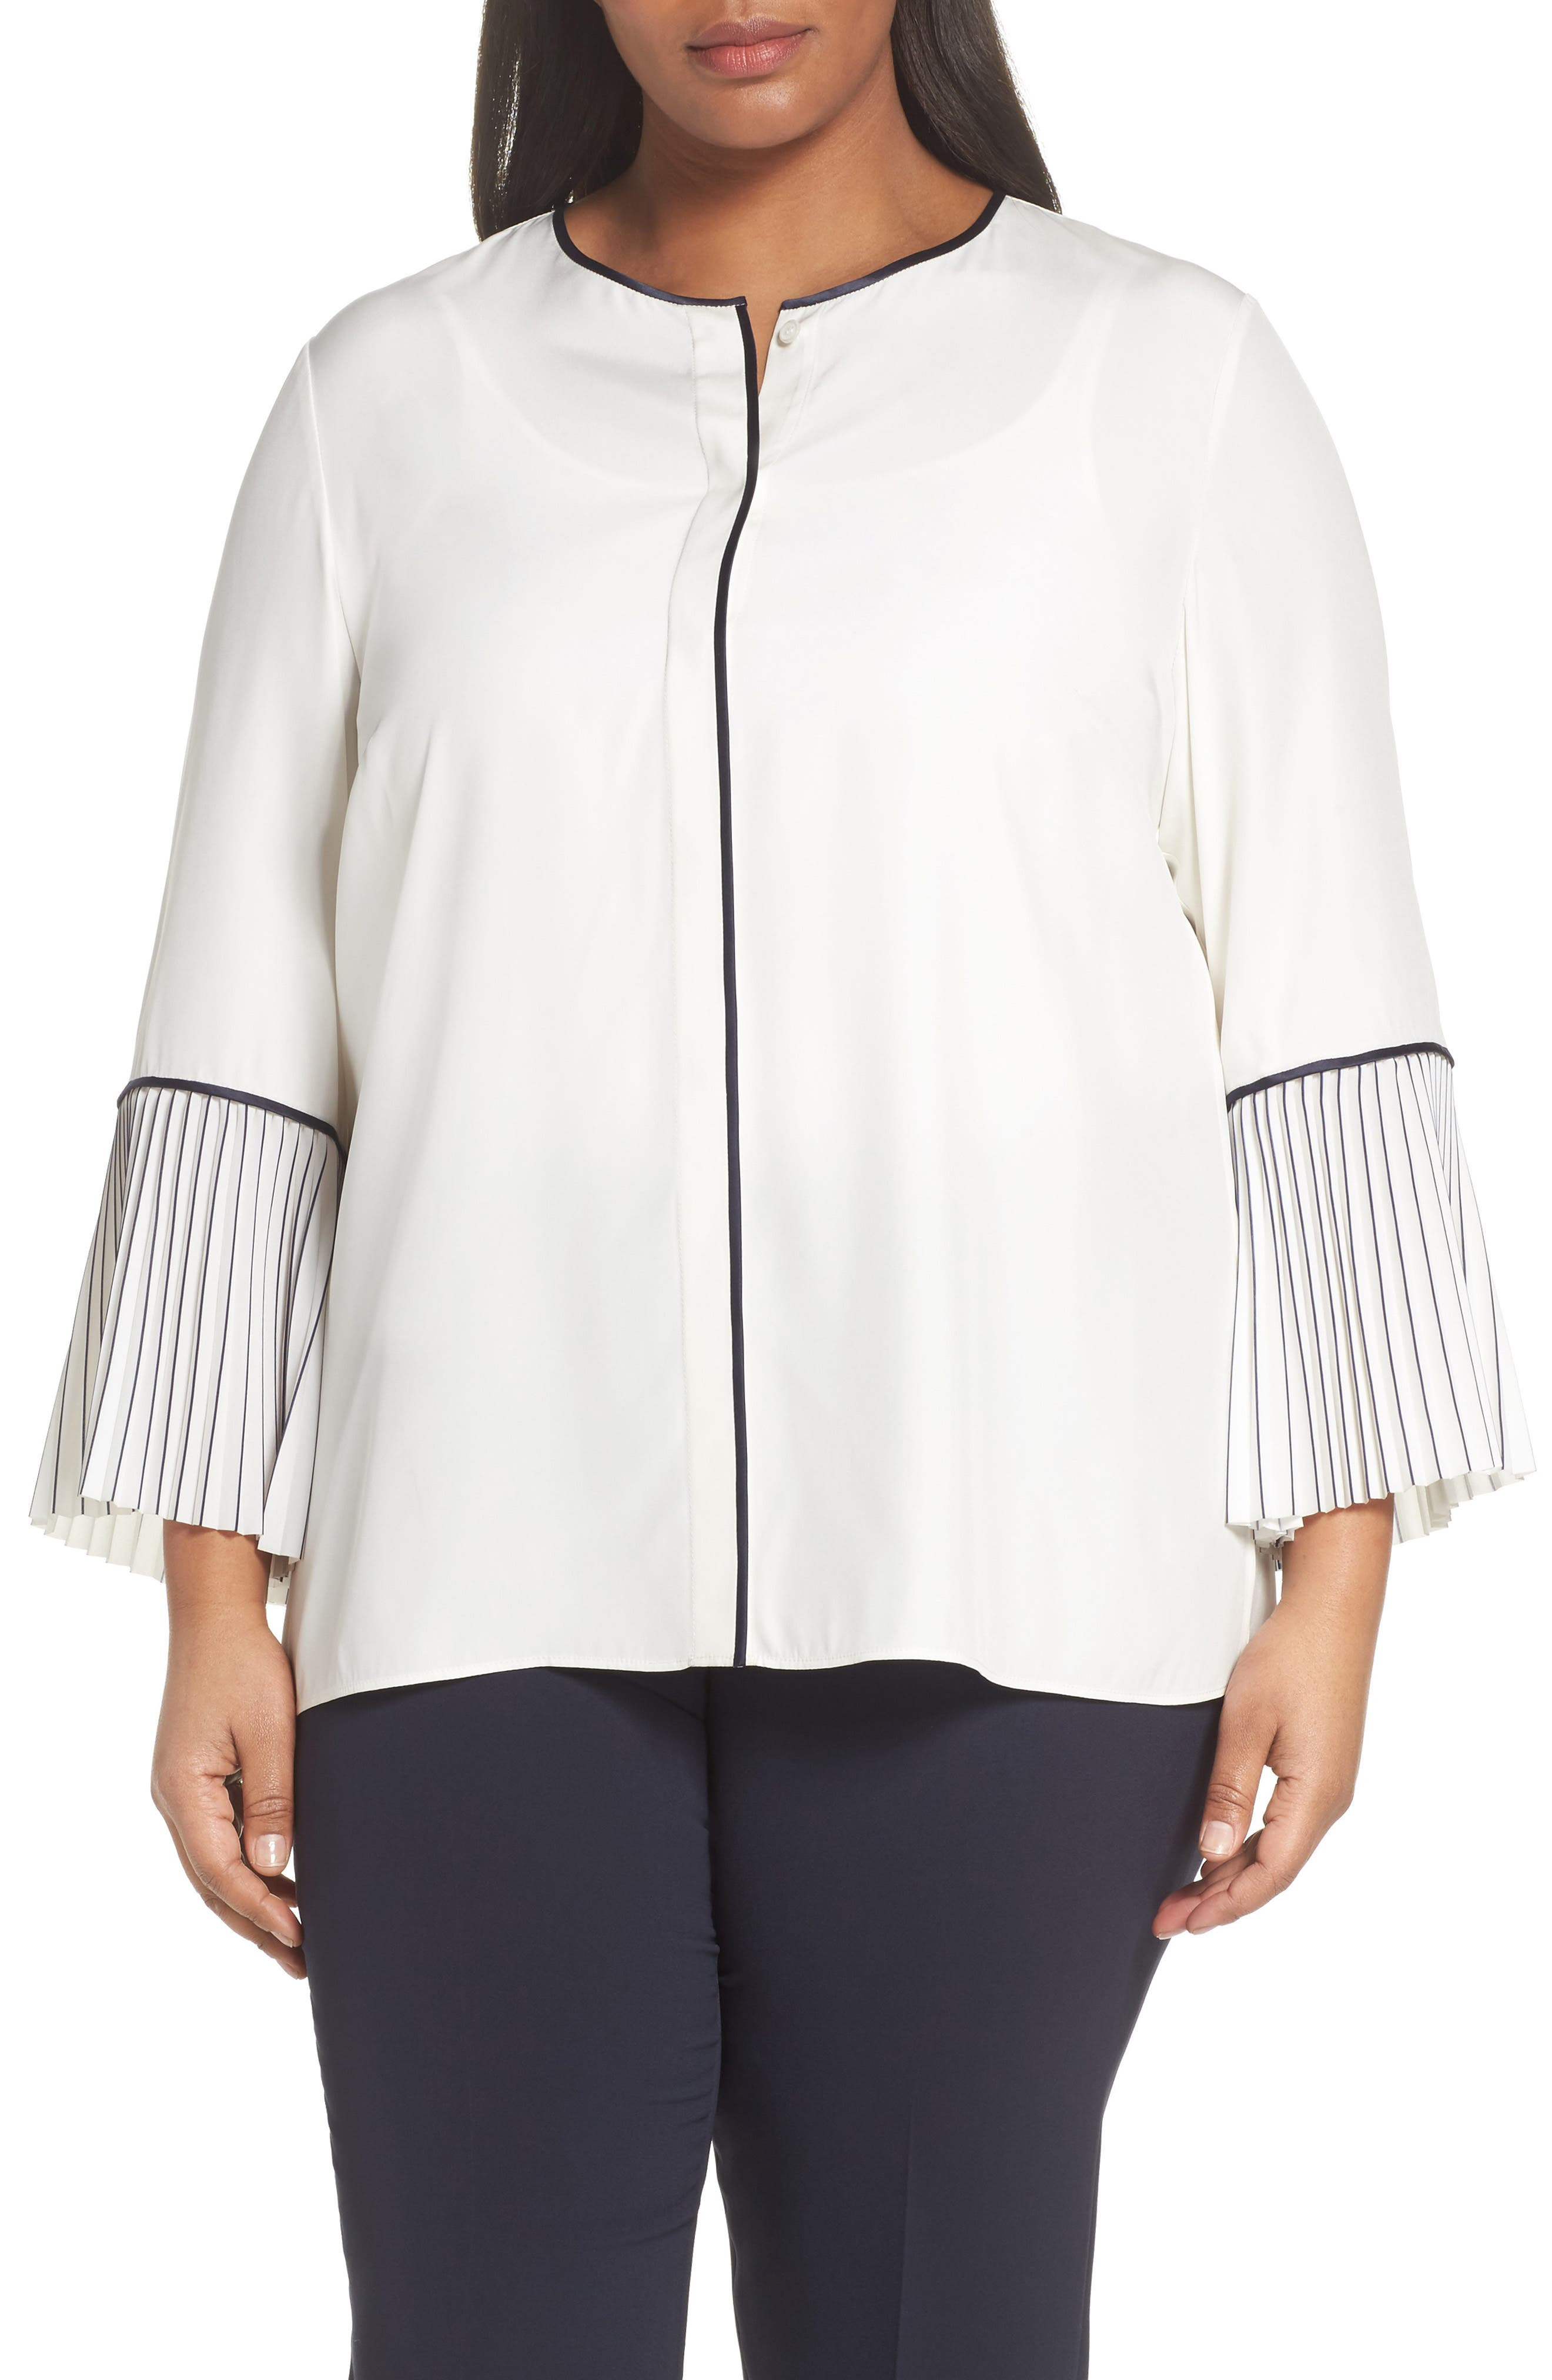 Lafayette 148 Nemy Pleated Bell Sleeve Silk Blouse,                             Main thumbnail 1, color,                             900